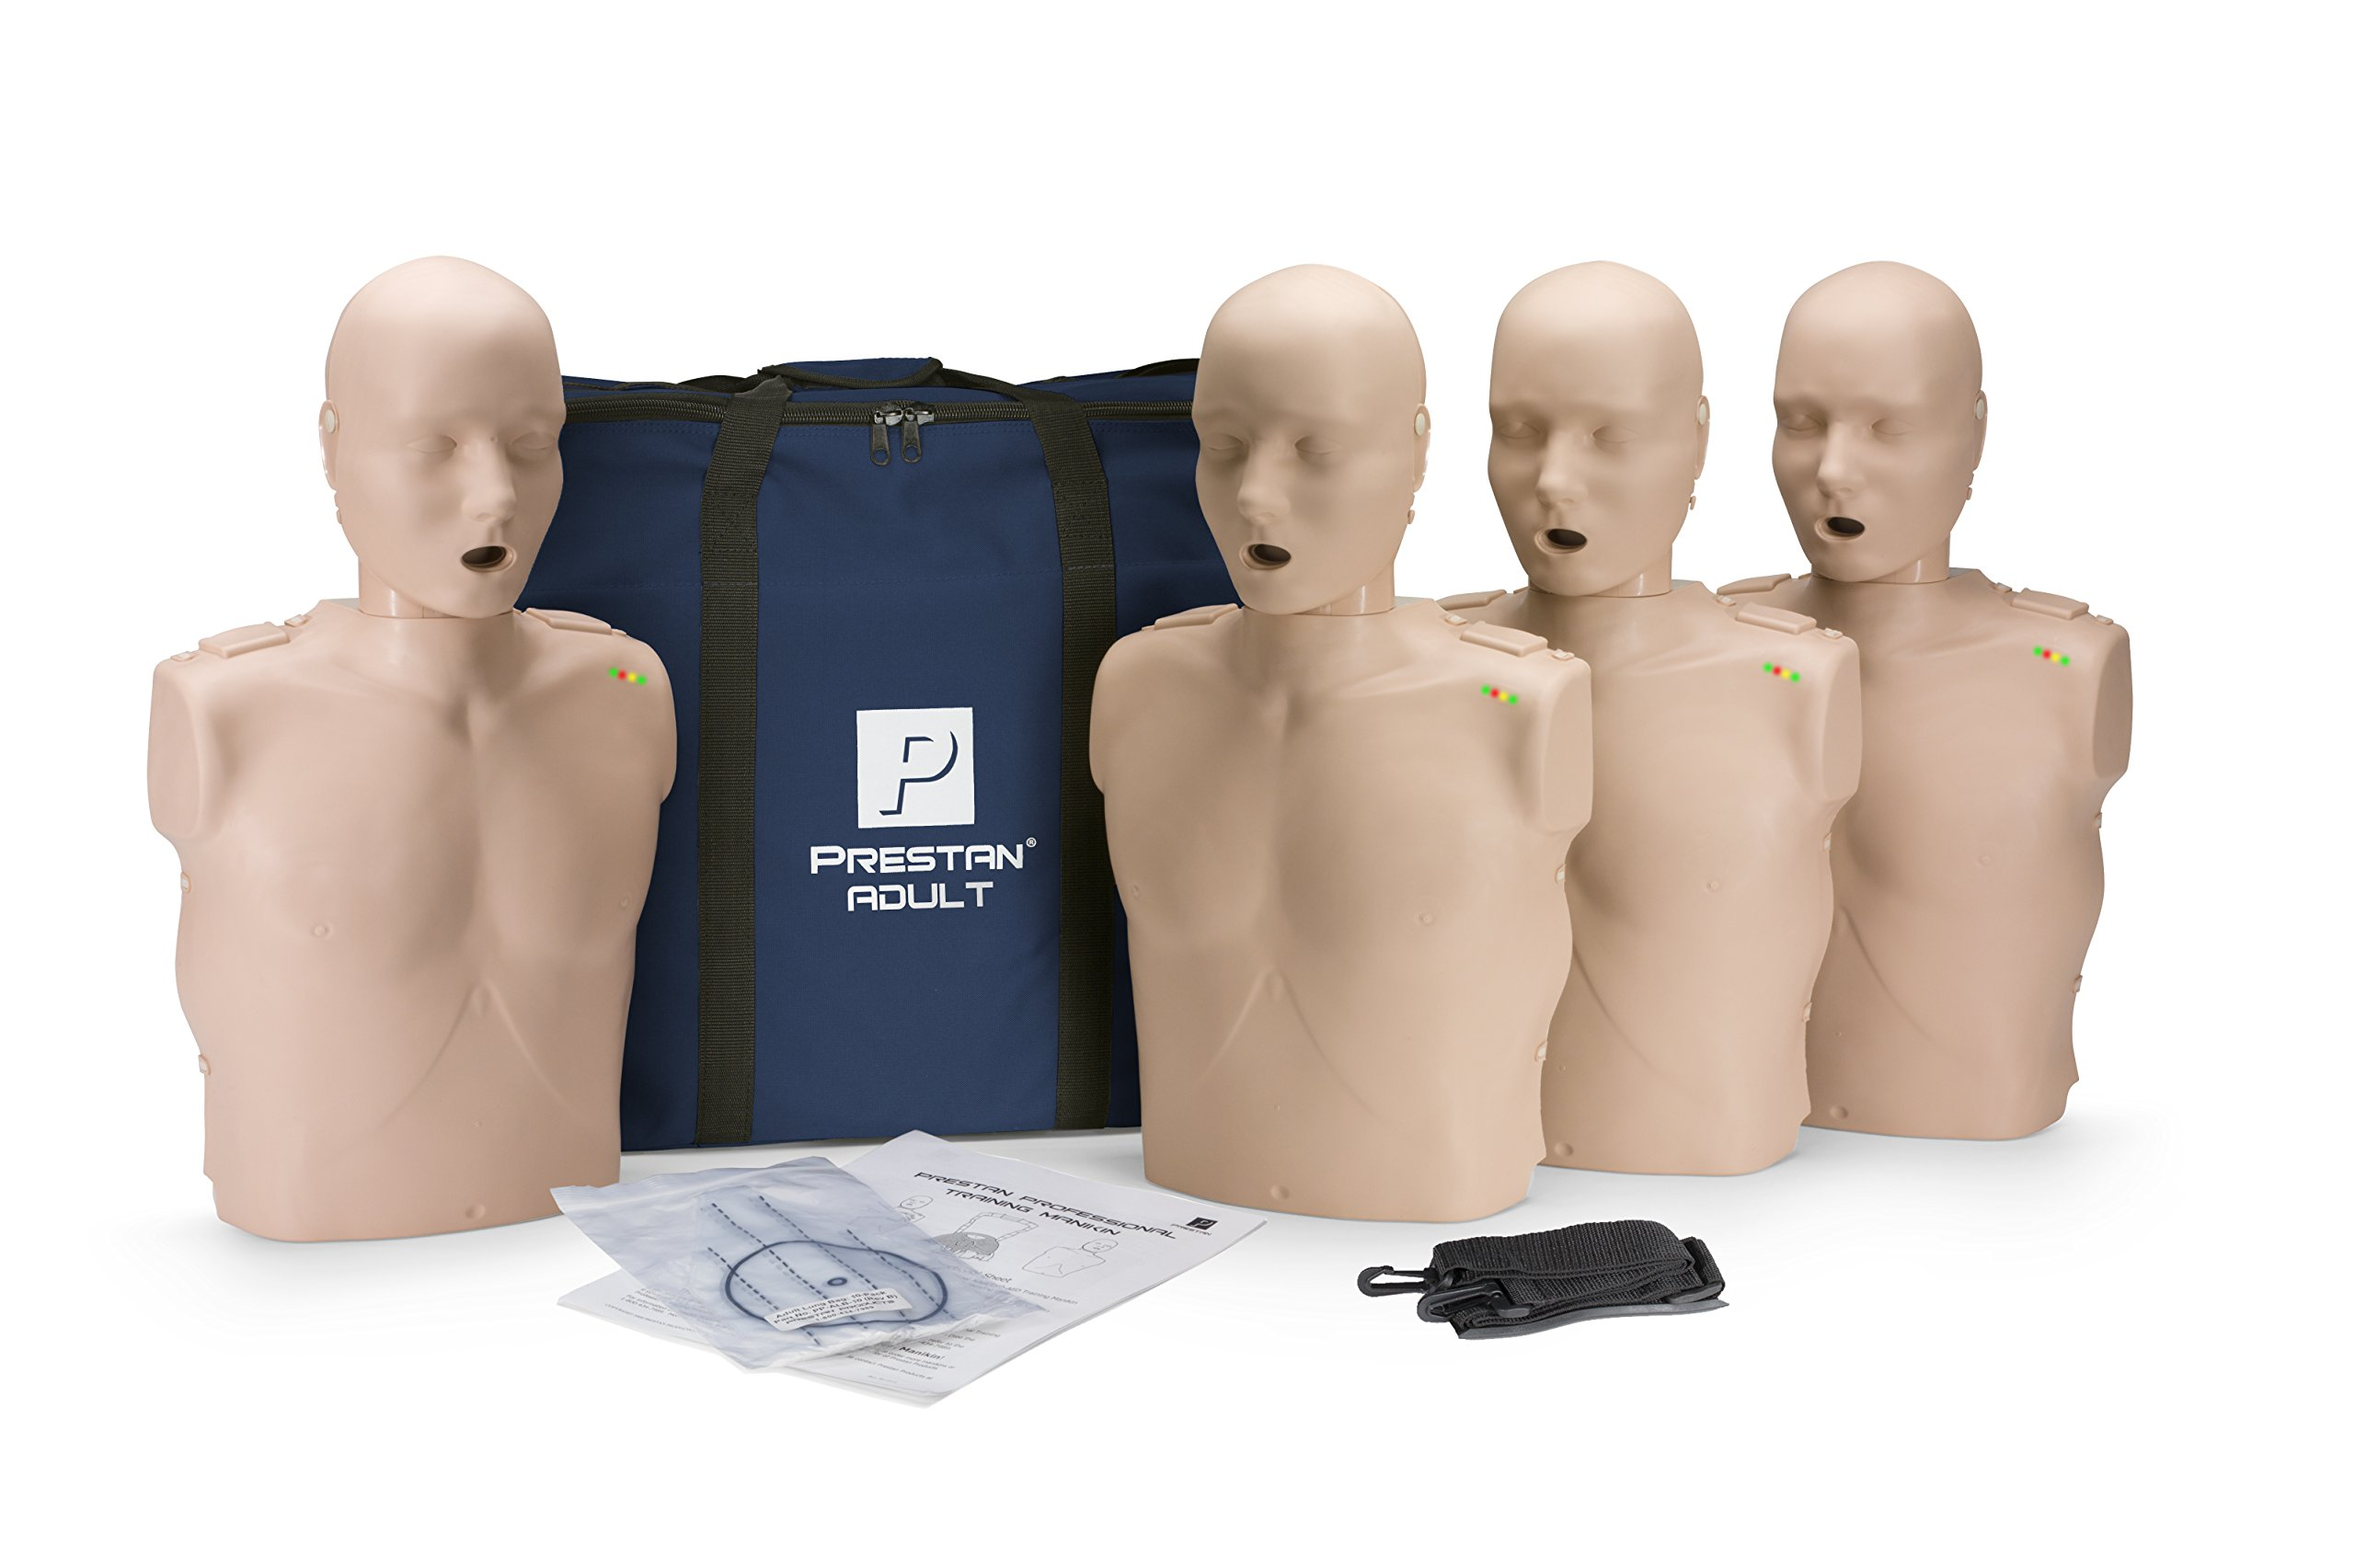 Prestan Professional Adult Medium Skin CPR-AED Training Manikin 4-Pack (with CPR Monitor) by Prestan Products